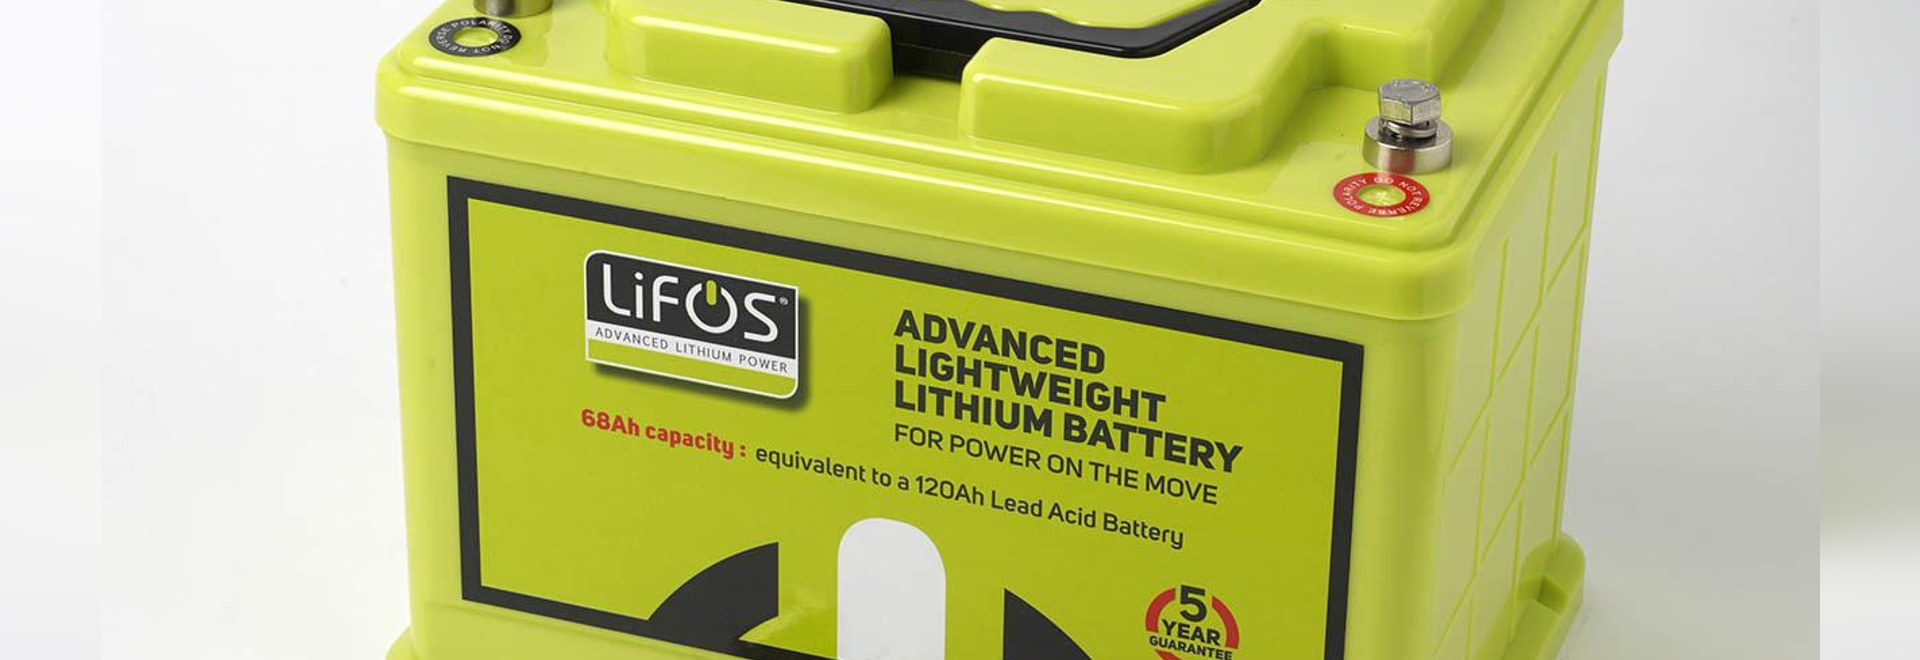 The new LiFOS lithium battery Photo: Solar Technology